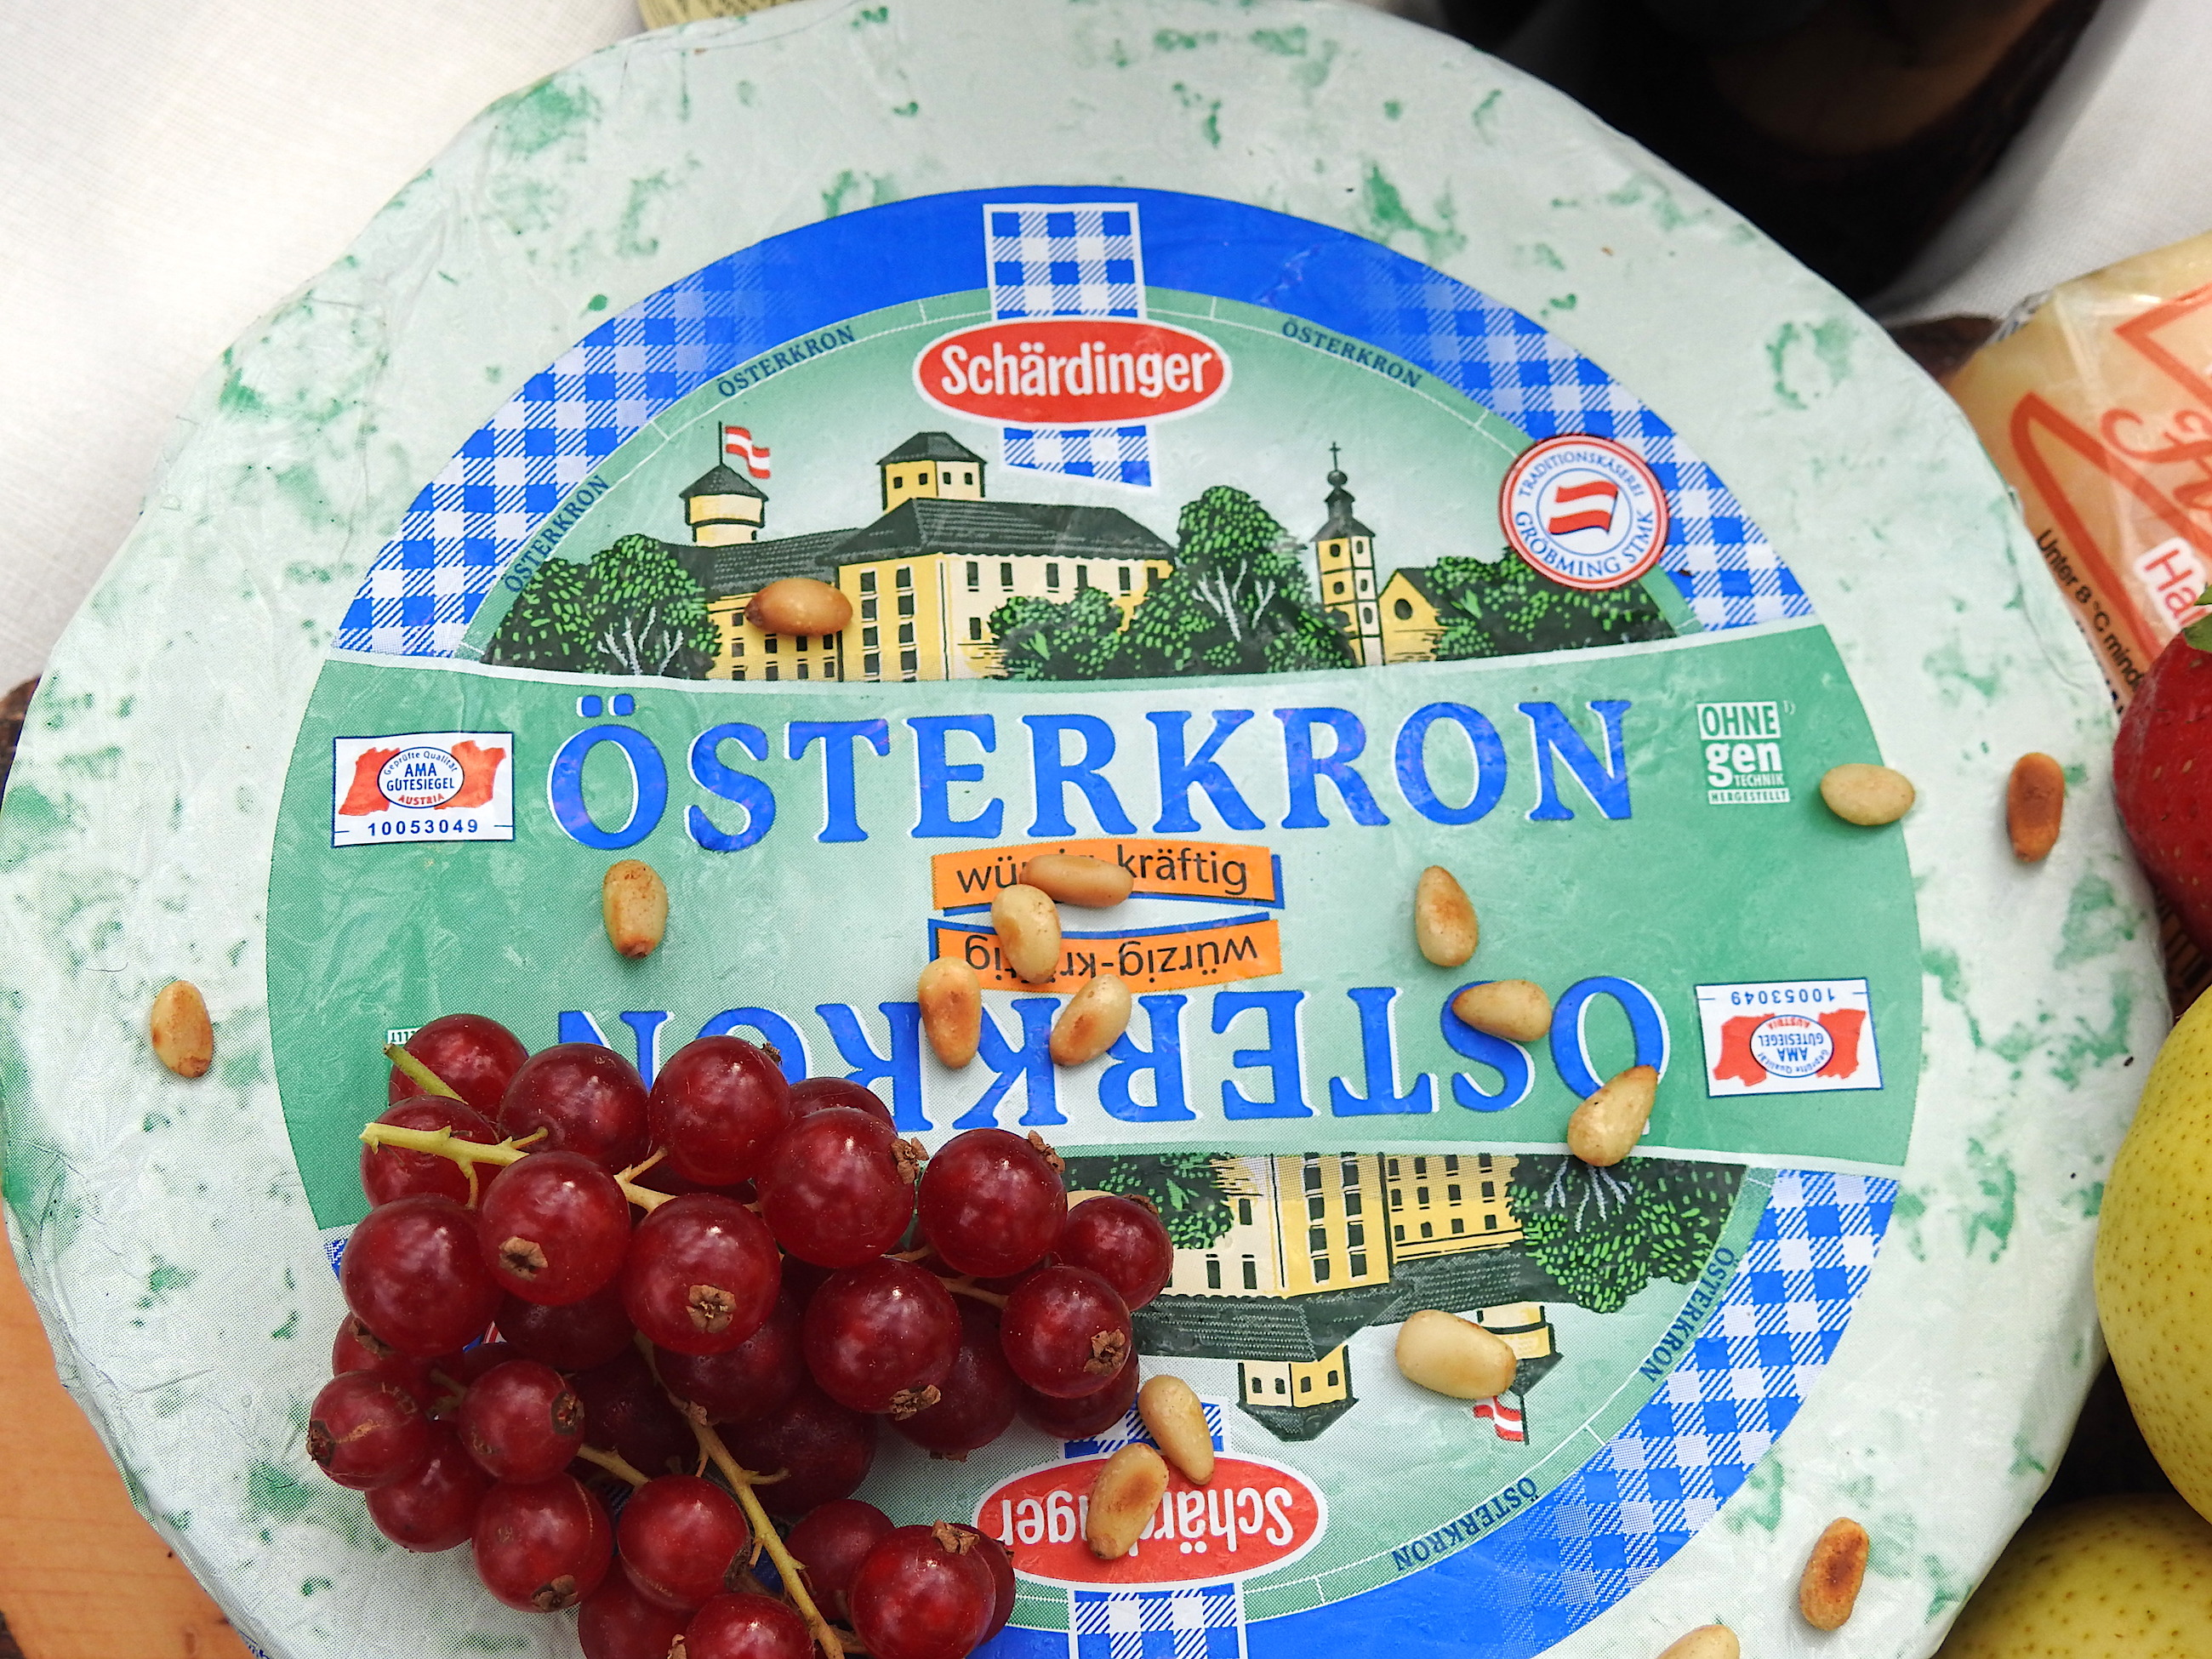 Osterkron, a strong cheese from the mountainous region, Styria.